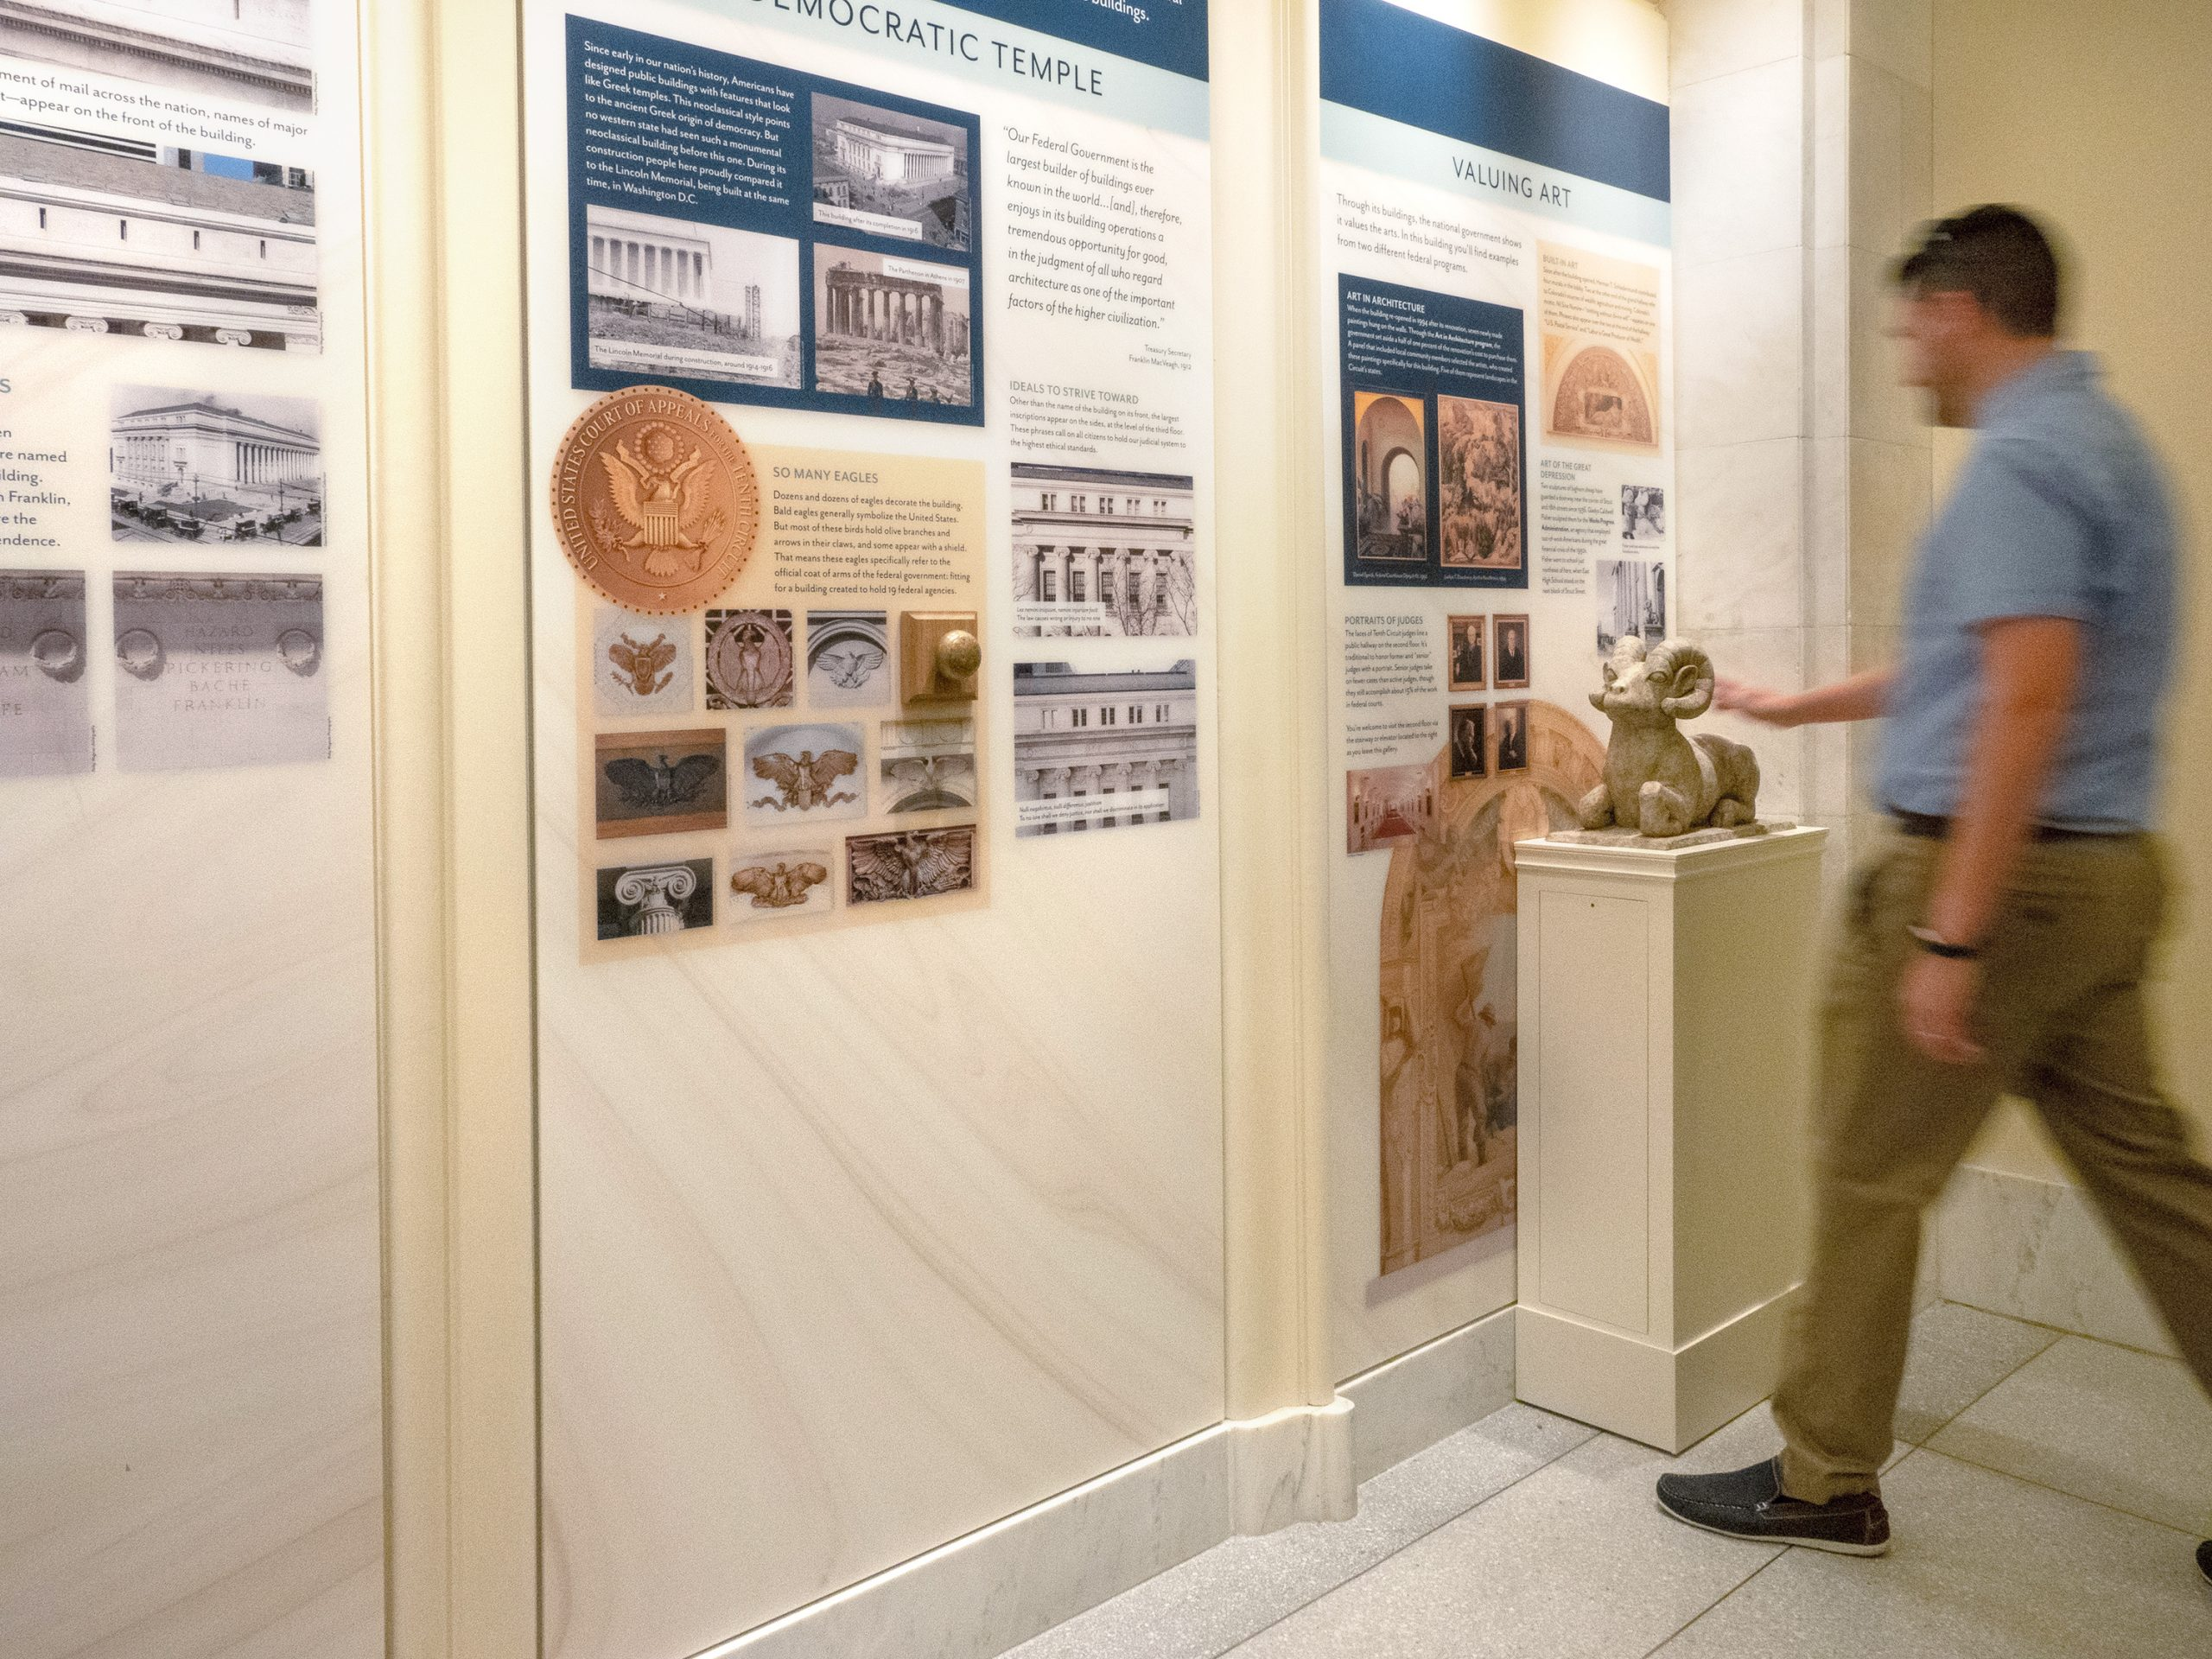 Tenth Circuit Court | Wall Exhibit with Stand | Denver, CO